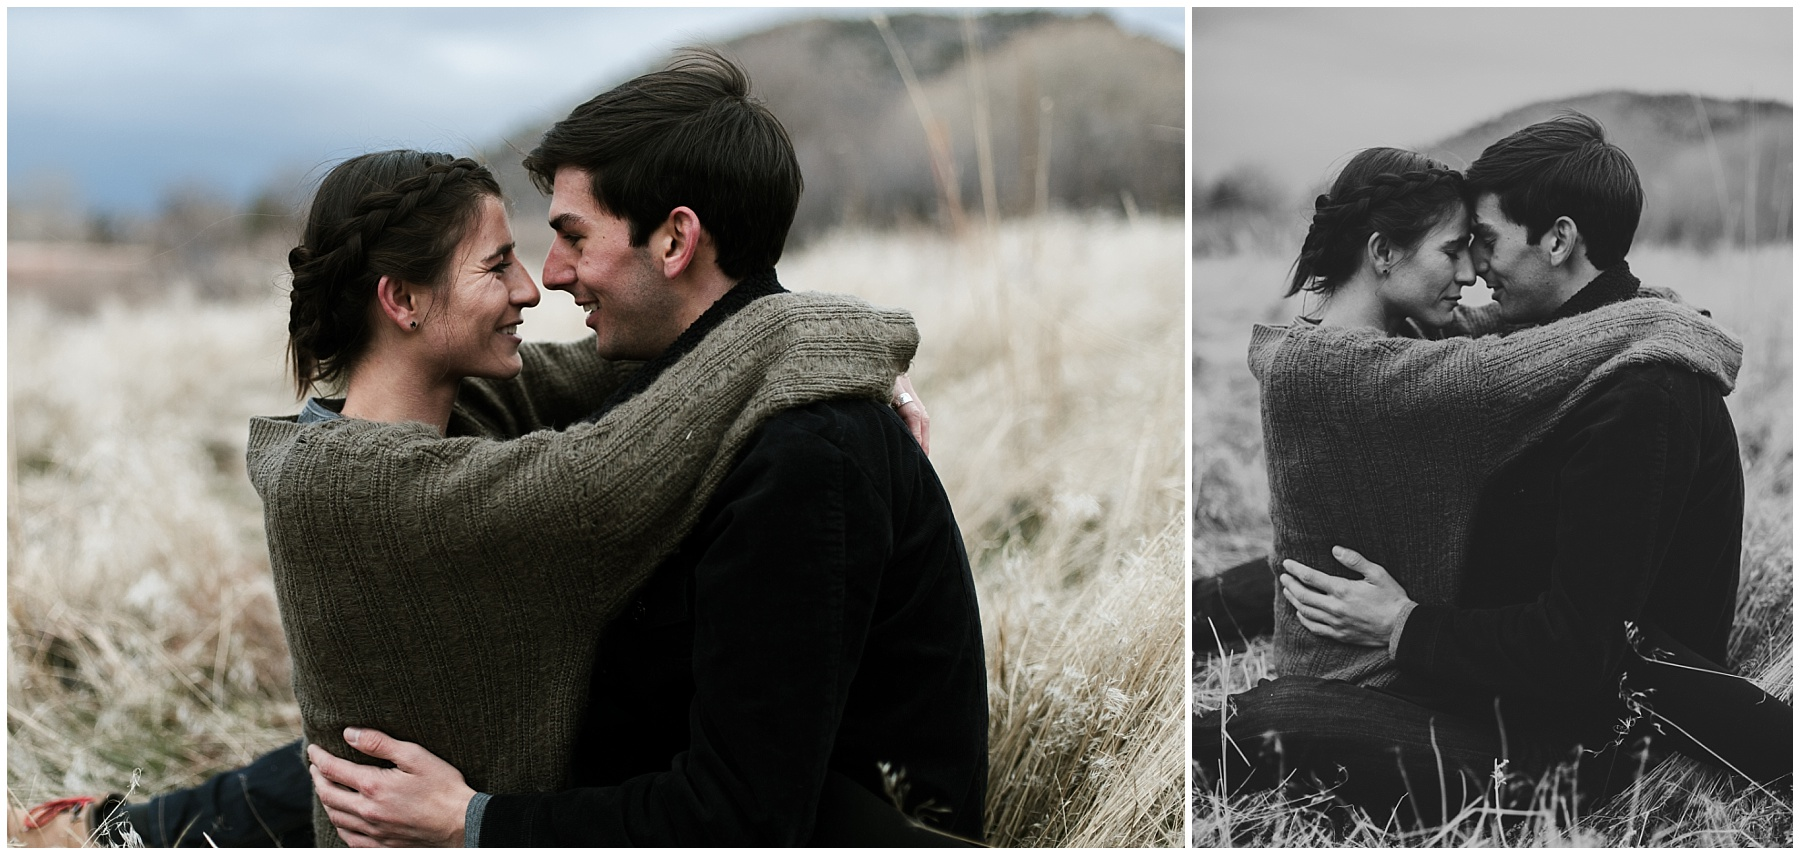 Katesalleyphotography-150_engagement shoot at Red Rocks.jpg